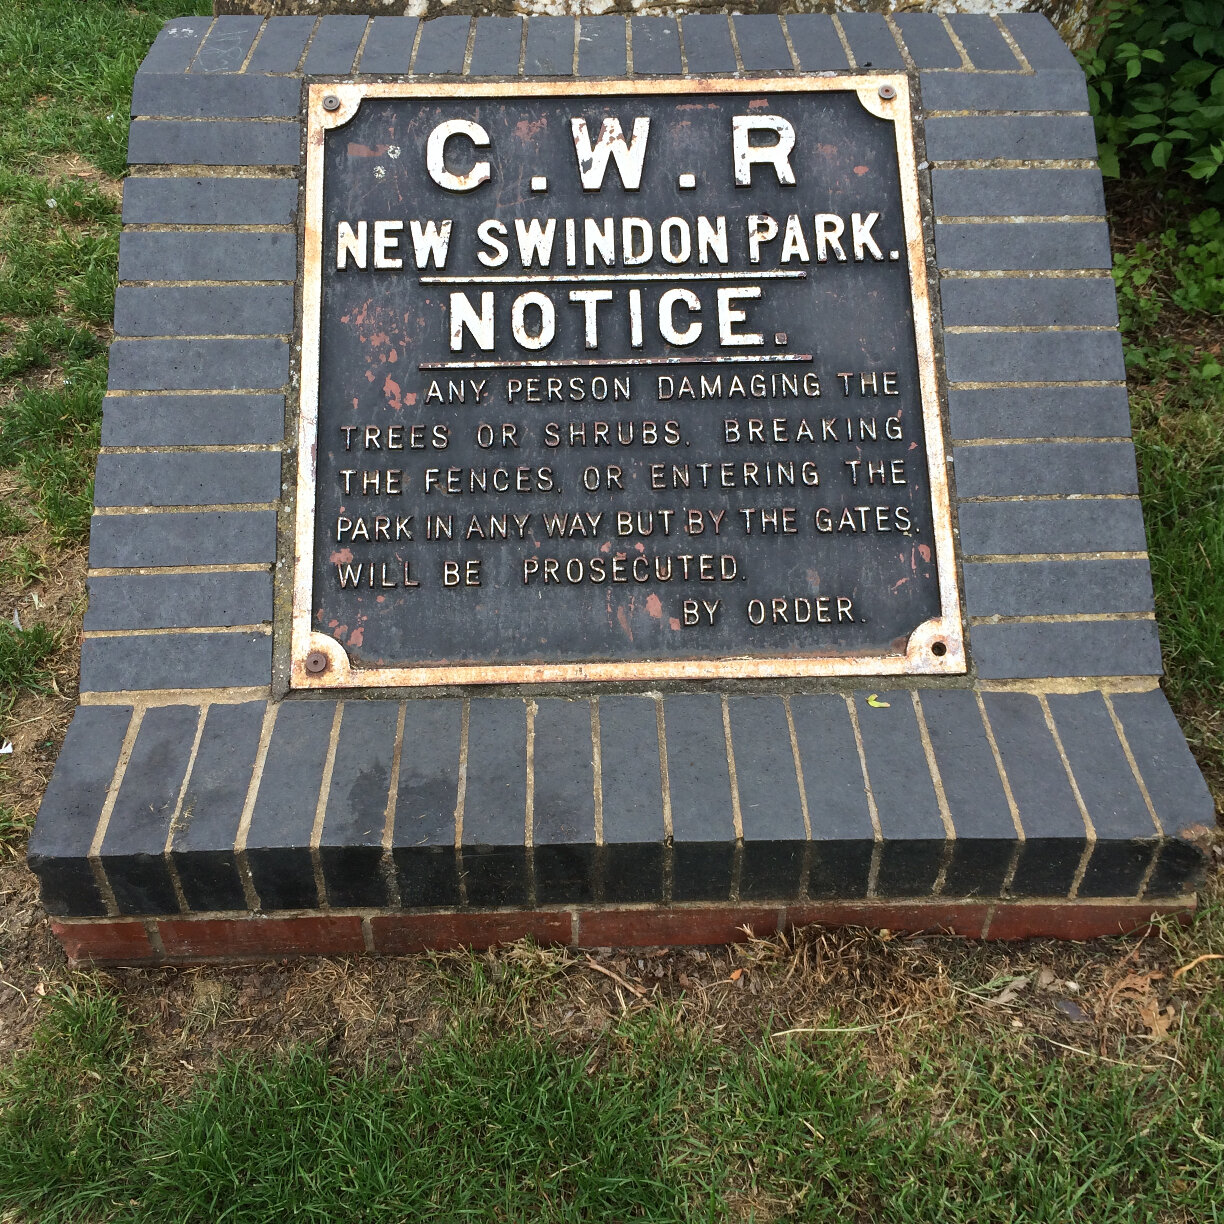 Swindon and The Great War